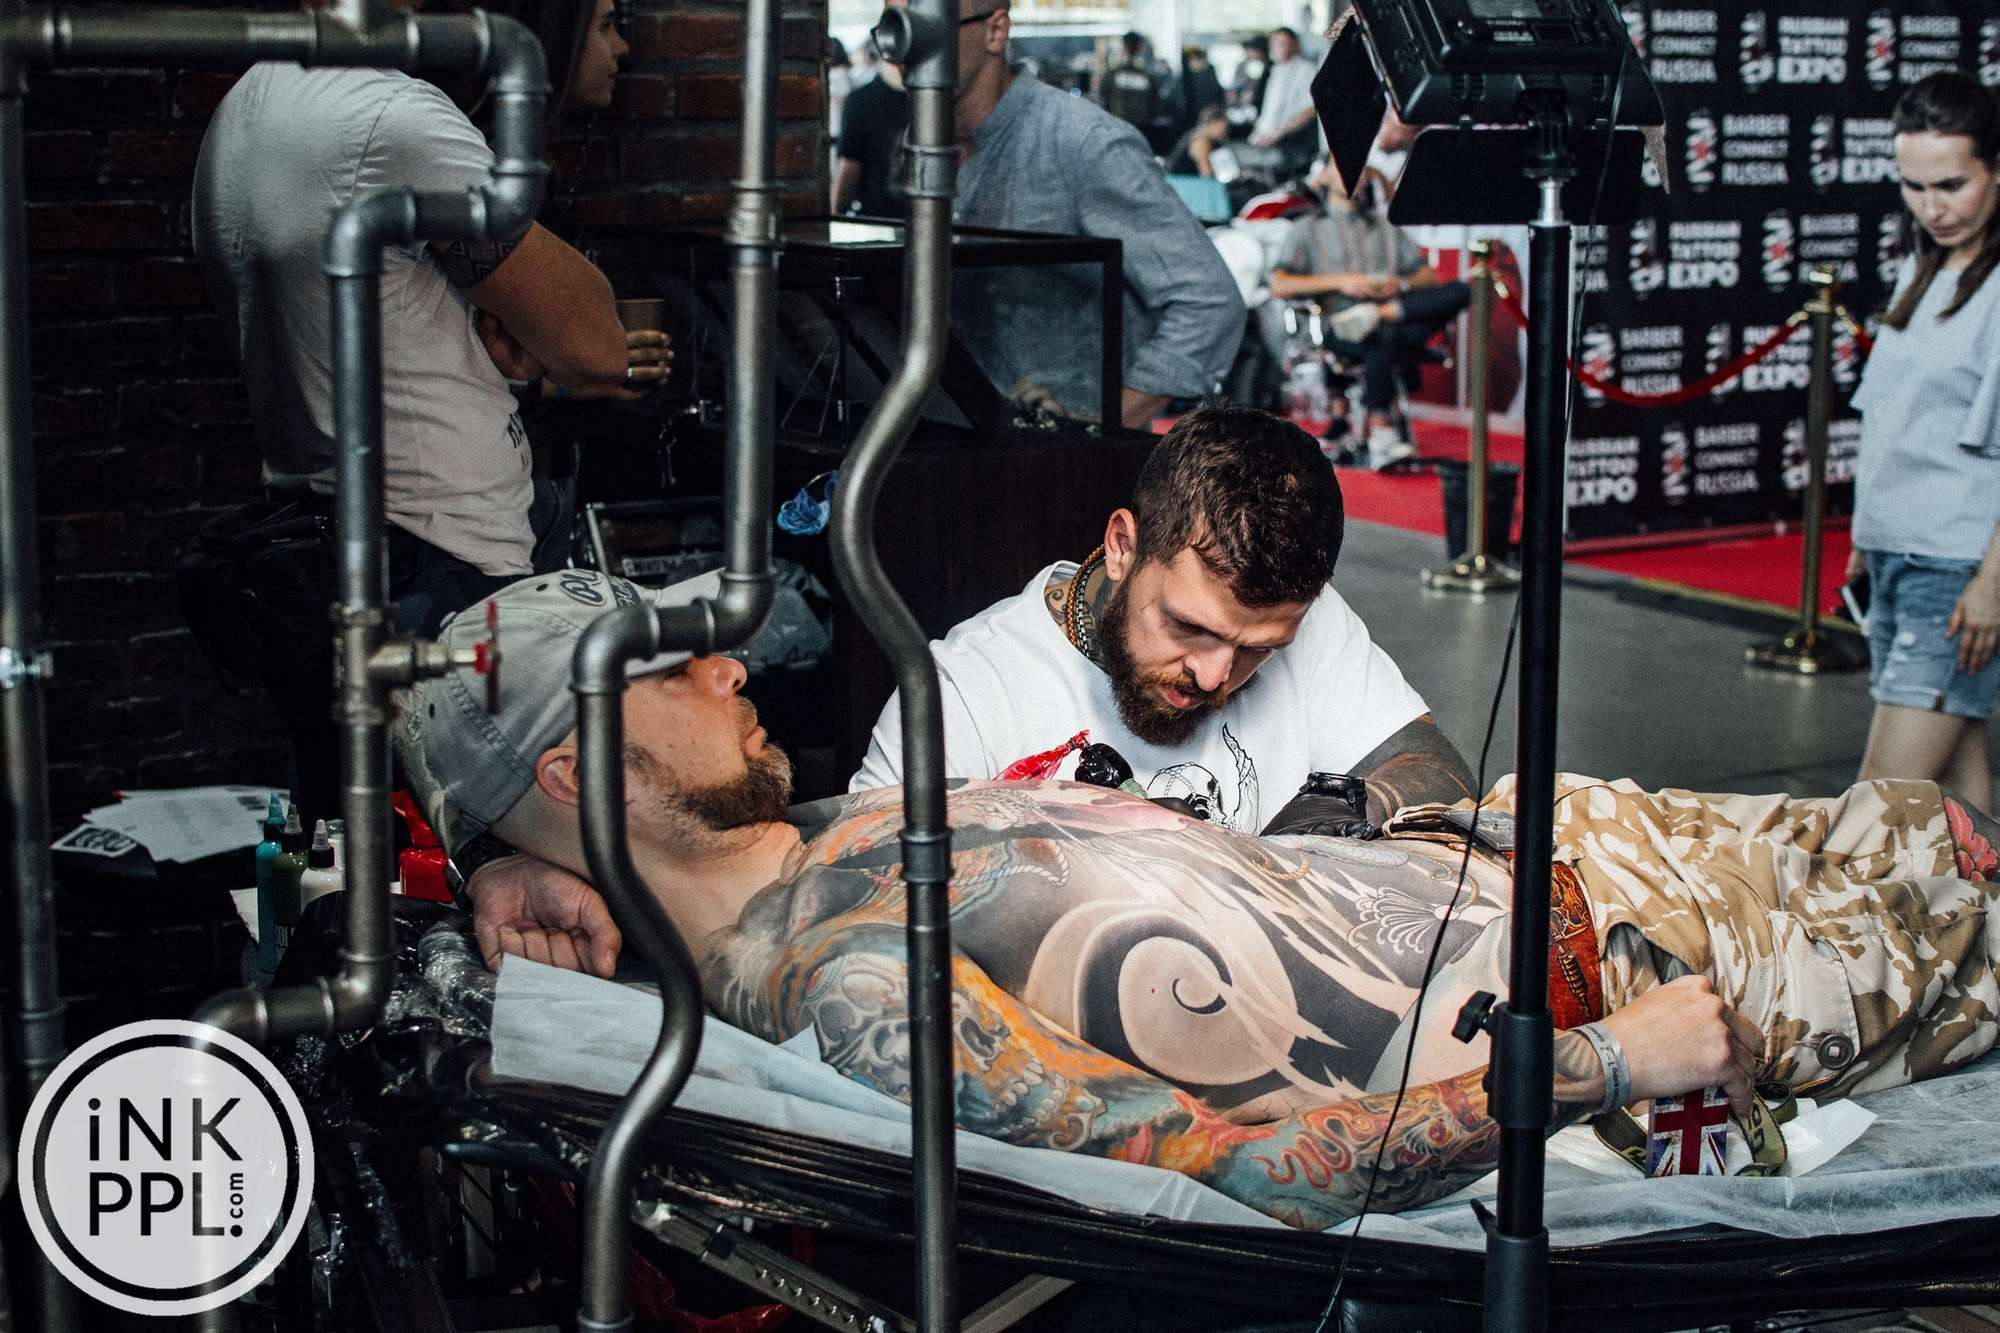 Russian Tattoo Expo / Barber Connect Russia